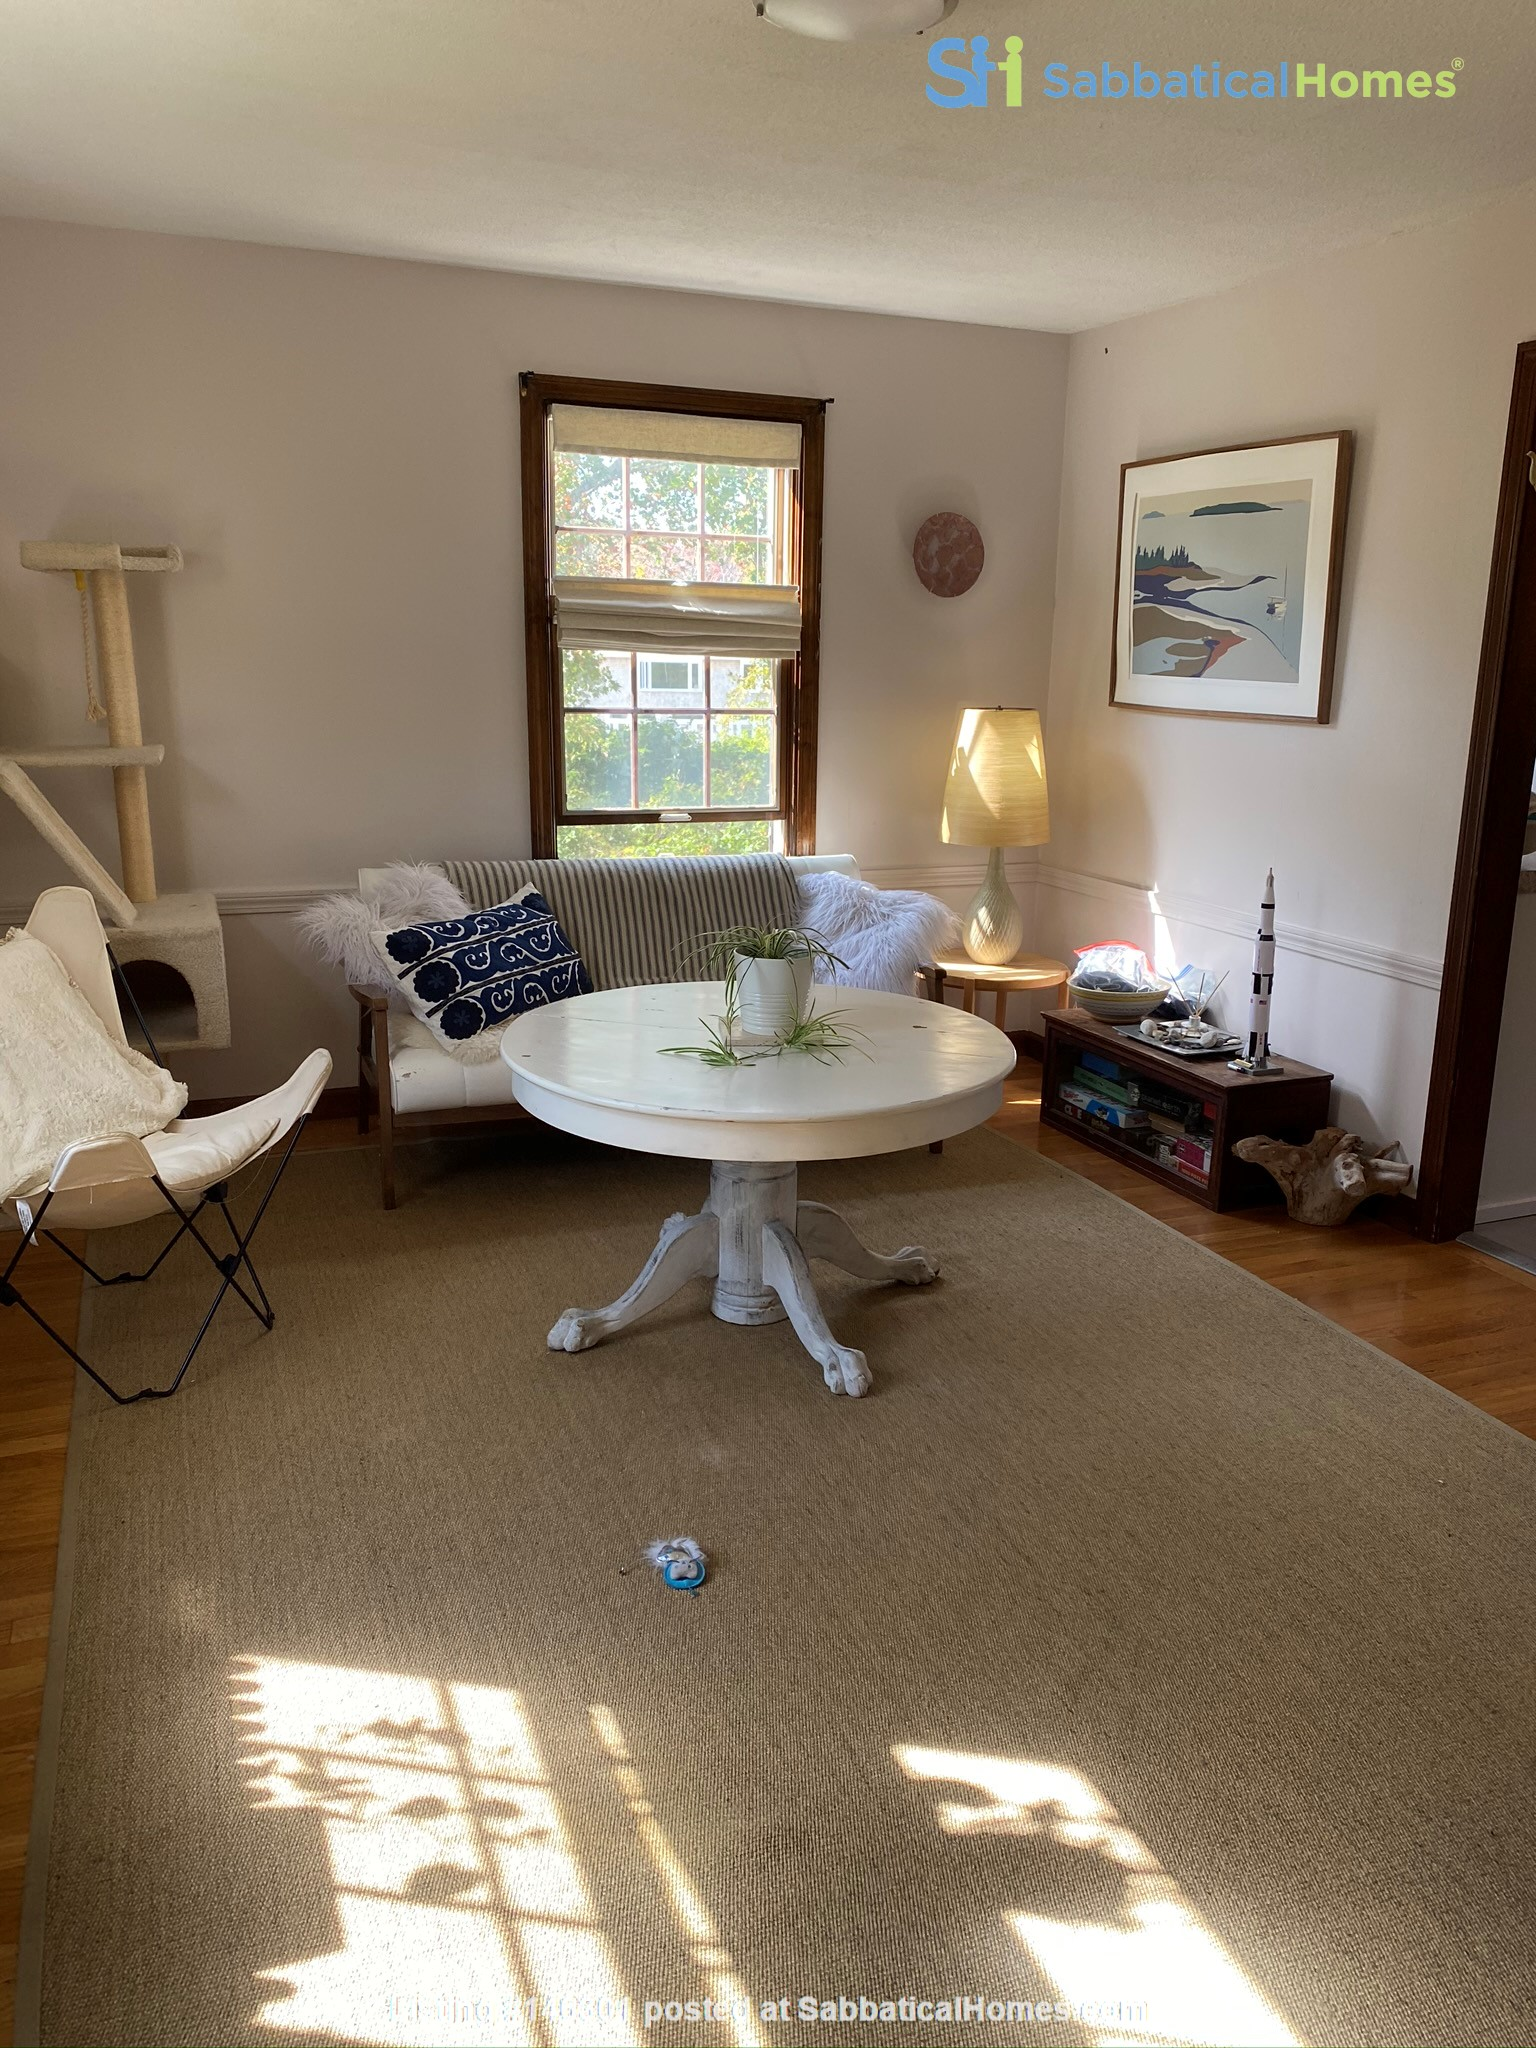 A quiet neighborhood offering coastal beauty and accessible location. Home Rental in Dartmouth 3